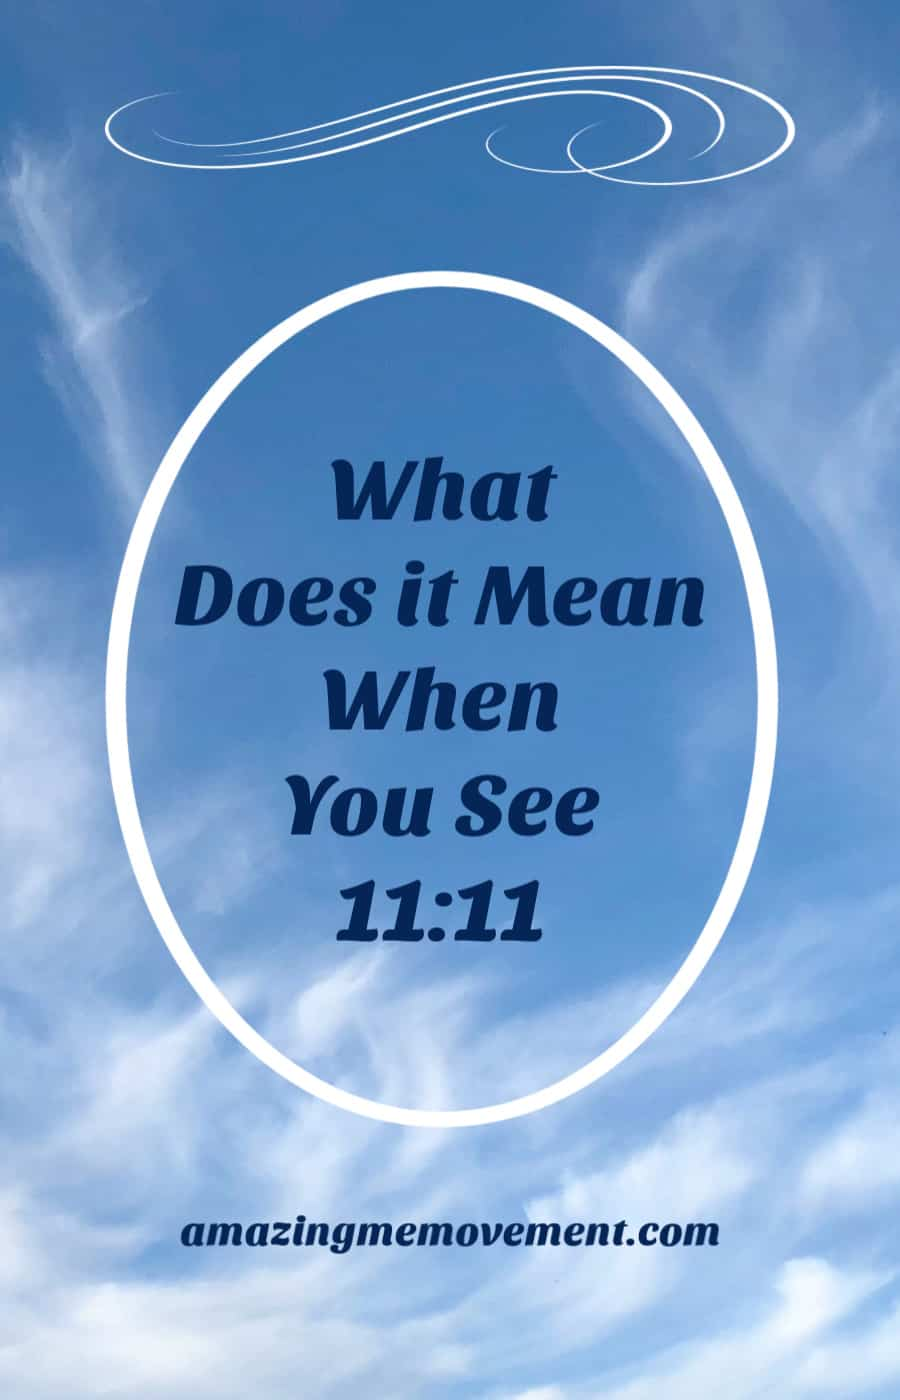 meaning of 11:11